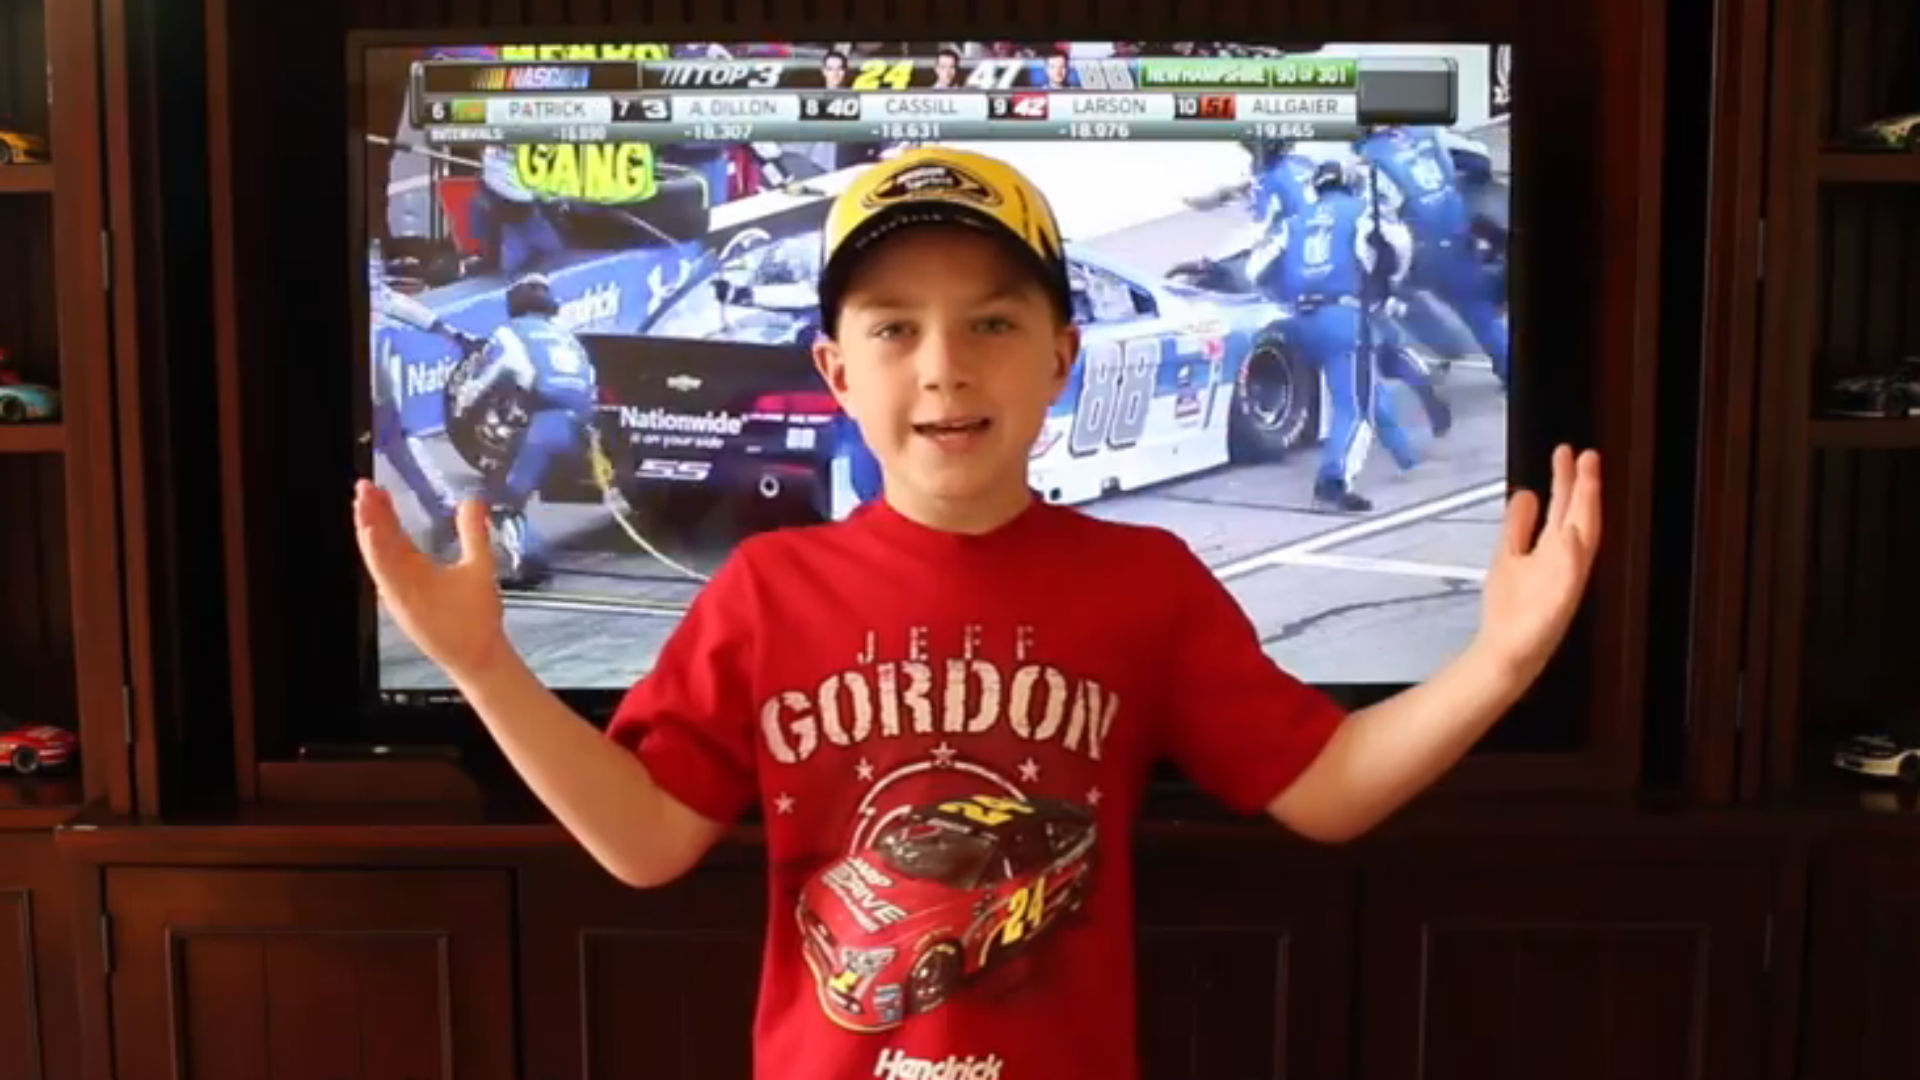 Little Rappers' latest NASCAR rap video features Daytona, Kyle Busch